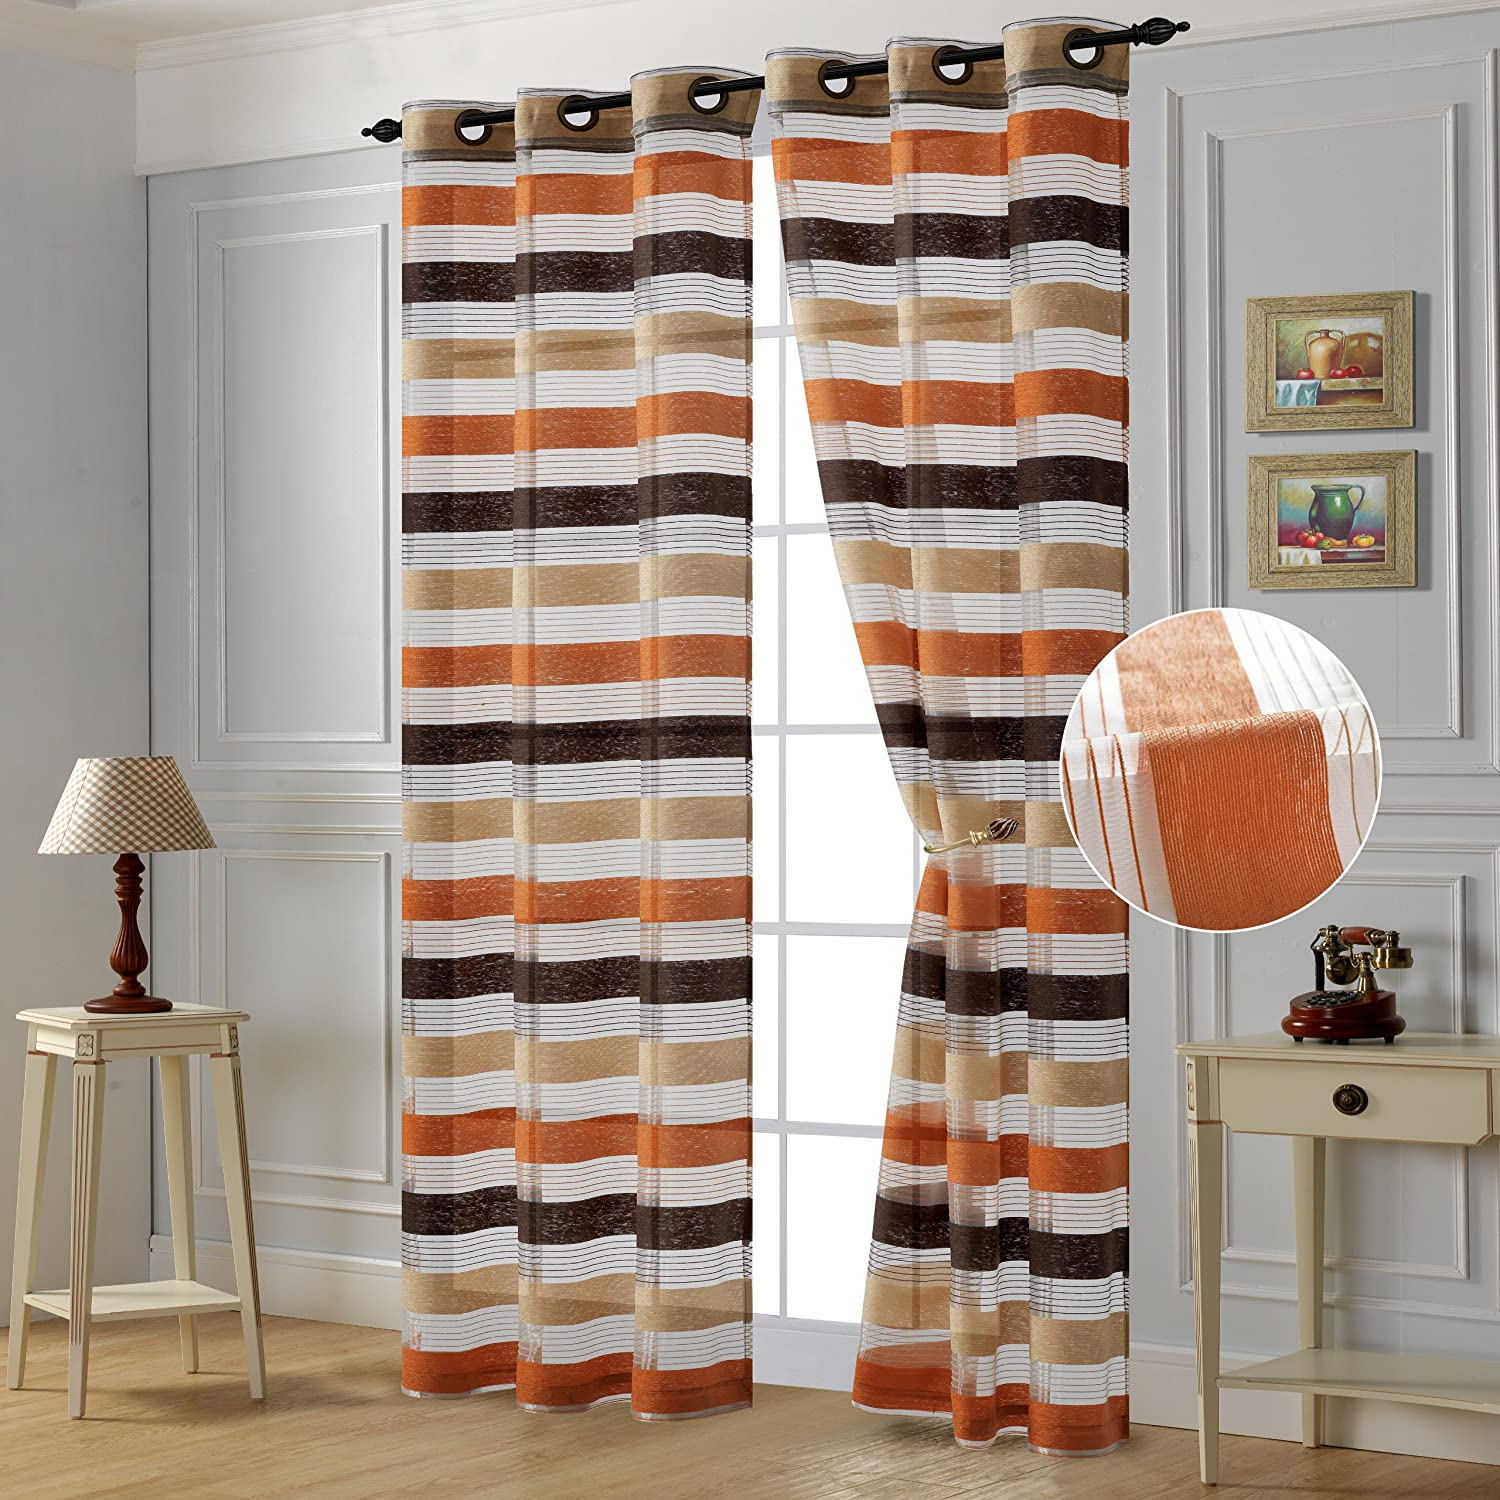 Editex Home Textiles Pamela Chenille Curtain Panel with Grommets, Orange, Set of 2